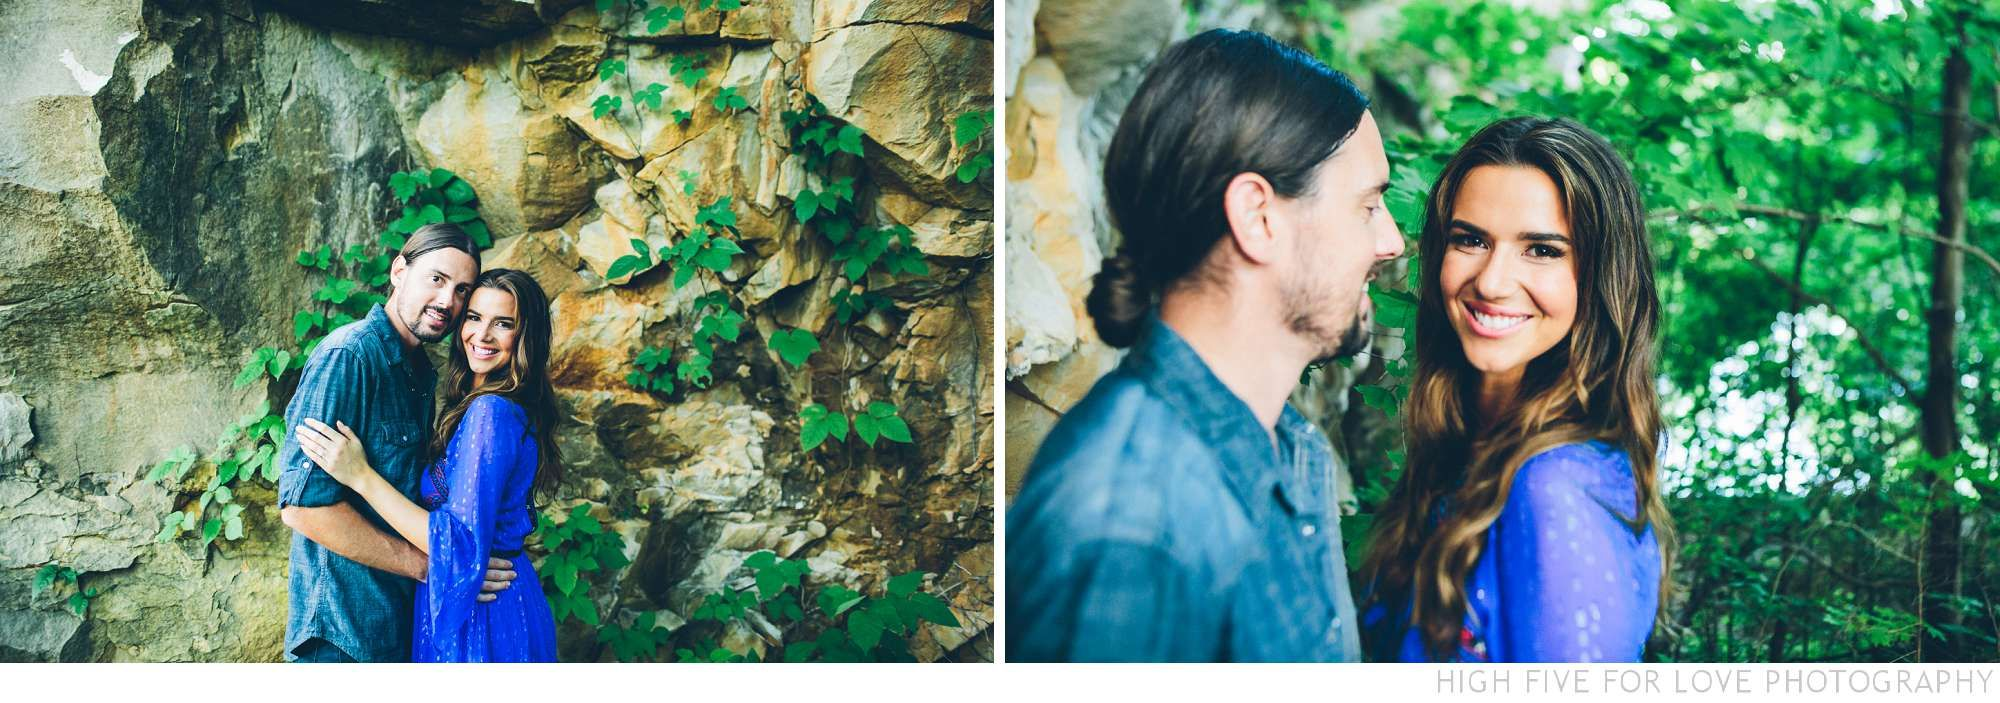 High Five For Love | Non-Traditional Wedding Photographers | Holly + Mike | Bohemian Rock Quarry Engagement Session